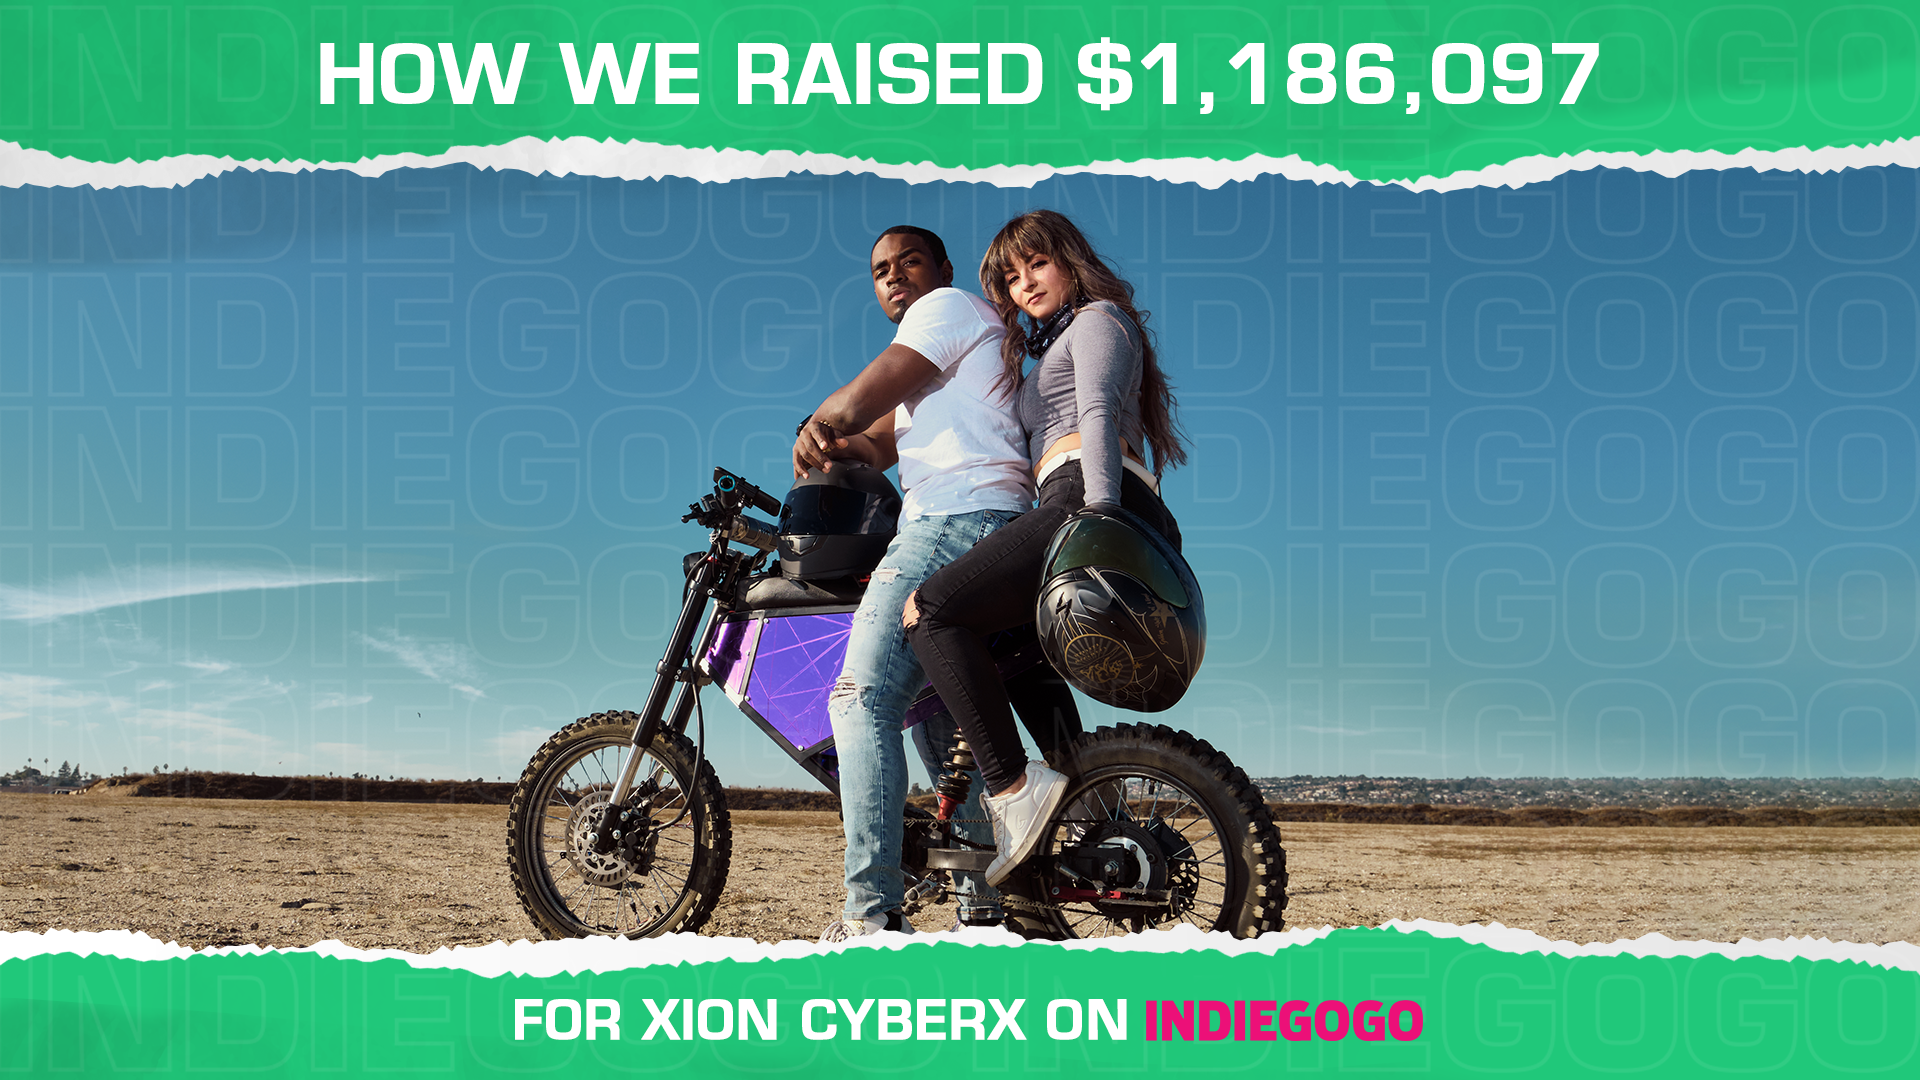 How we raised $1,186,097 for XION CyberX [CASE STUDY]